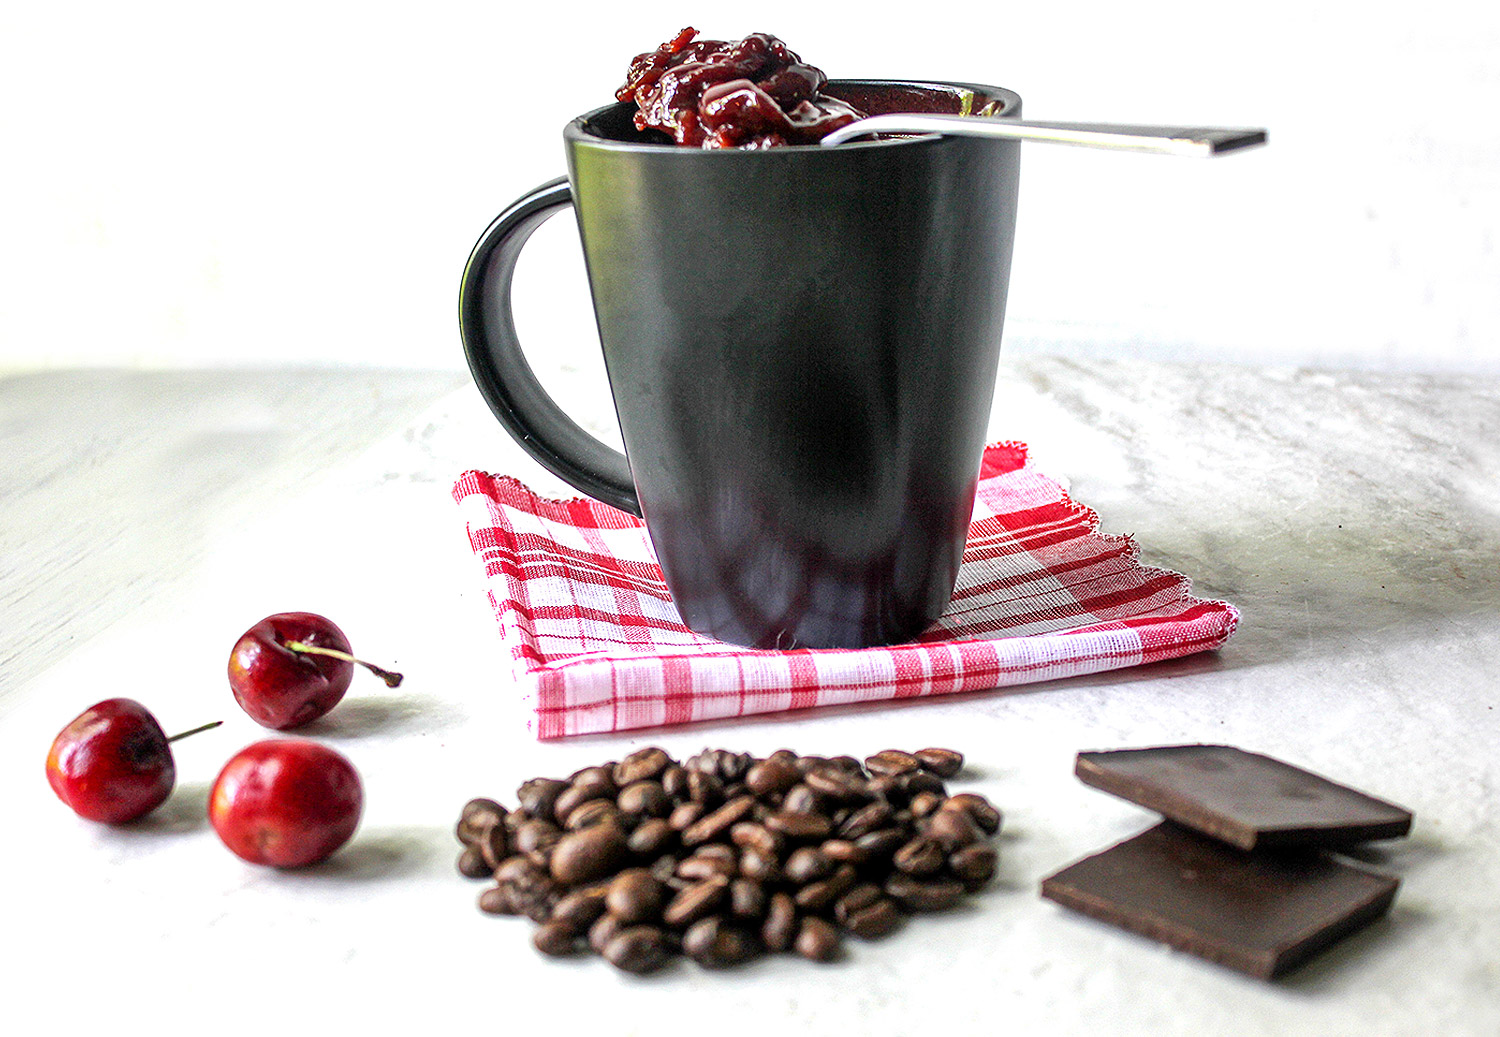 Tart fresh cherries, coffee beans, and two squares of chocolate in front of a black coffee mug that has a spoonful of chocolate cherry jam propped across the top . Coffee cup is on a red checked napkin.